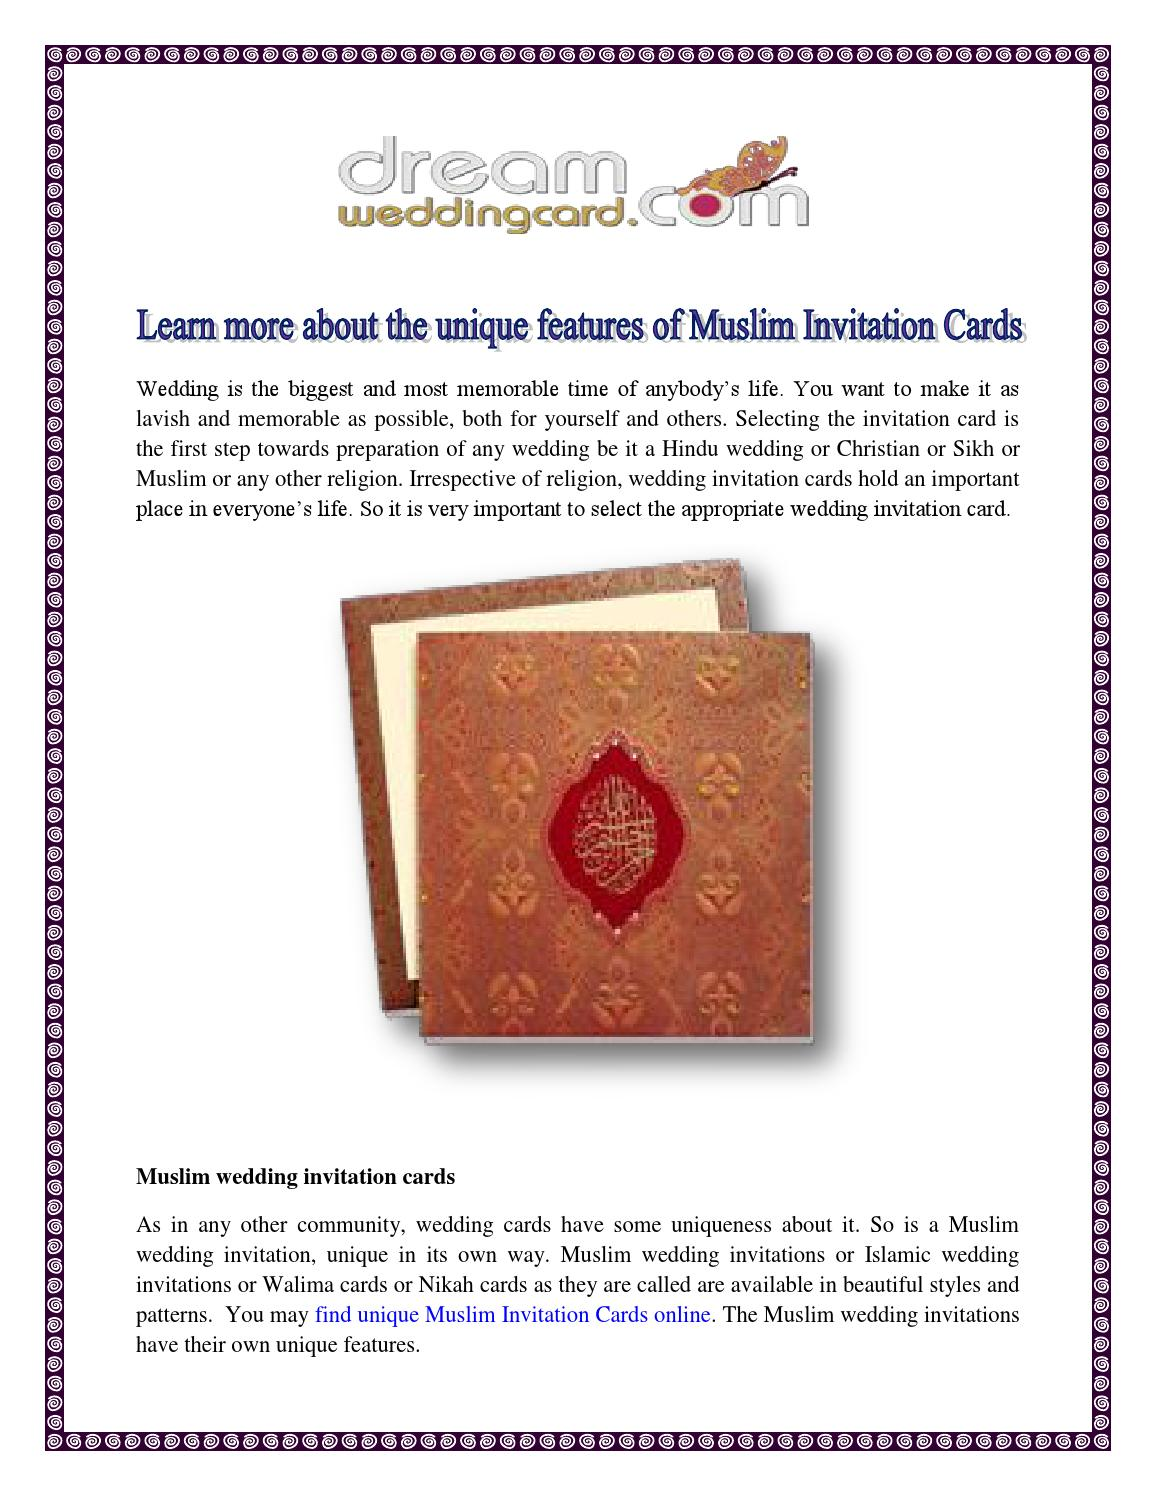 Learn More About The Unique Features Of Muslim Invitation